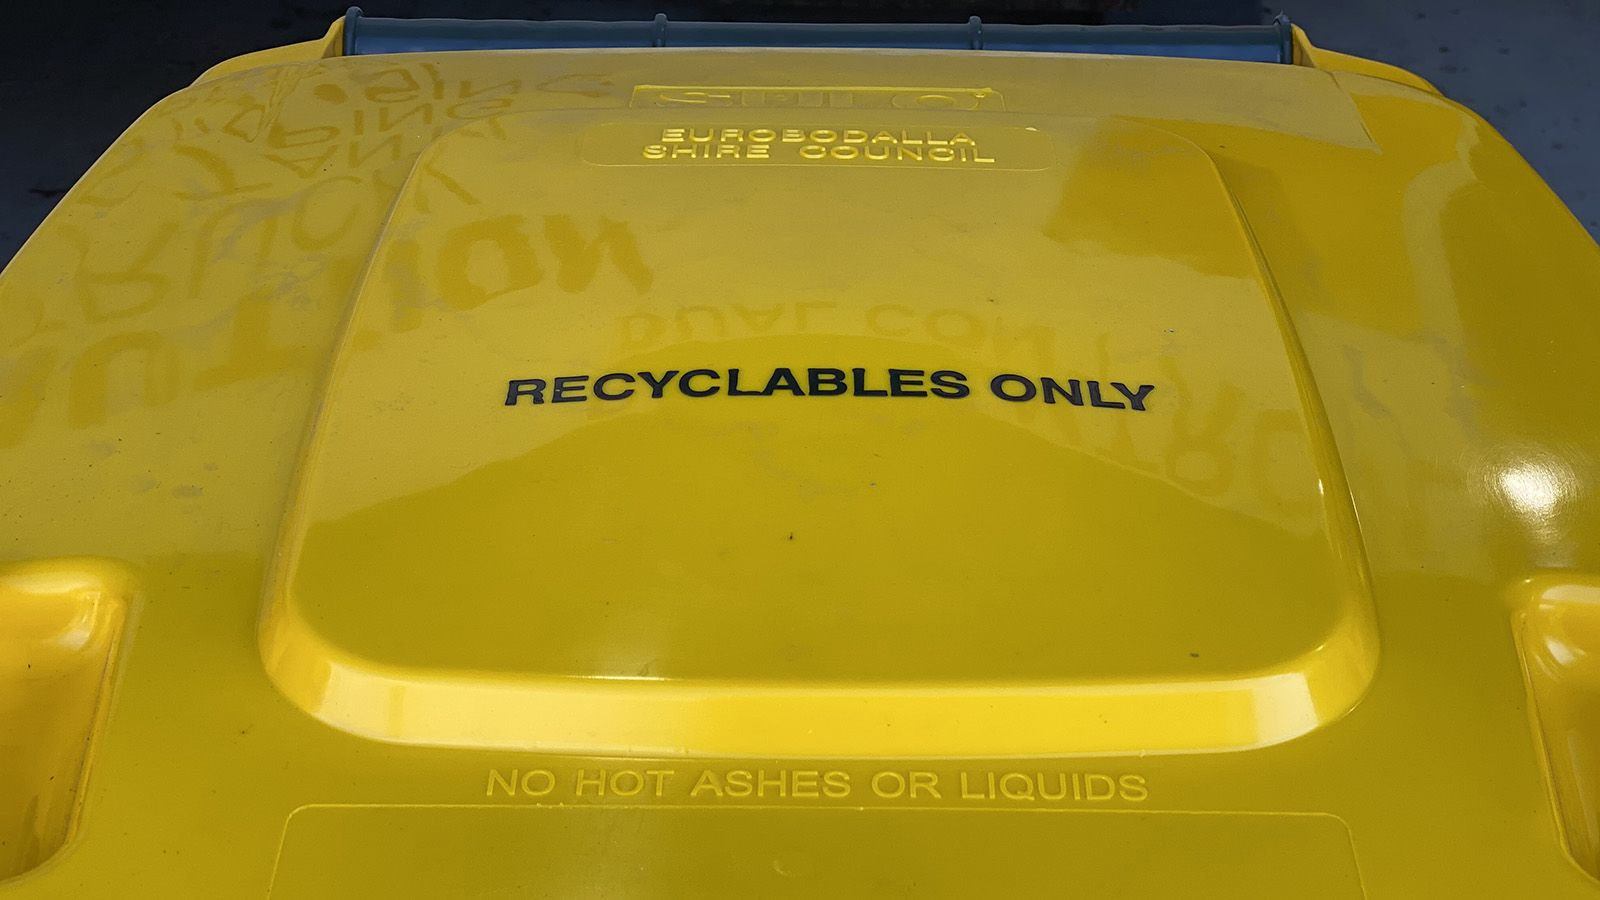 Yellow lid of a household recycling bin banner image